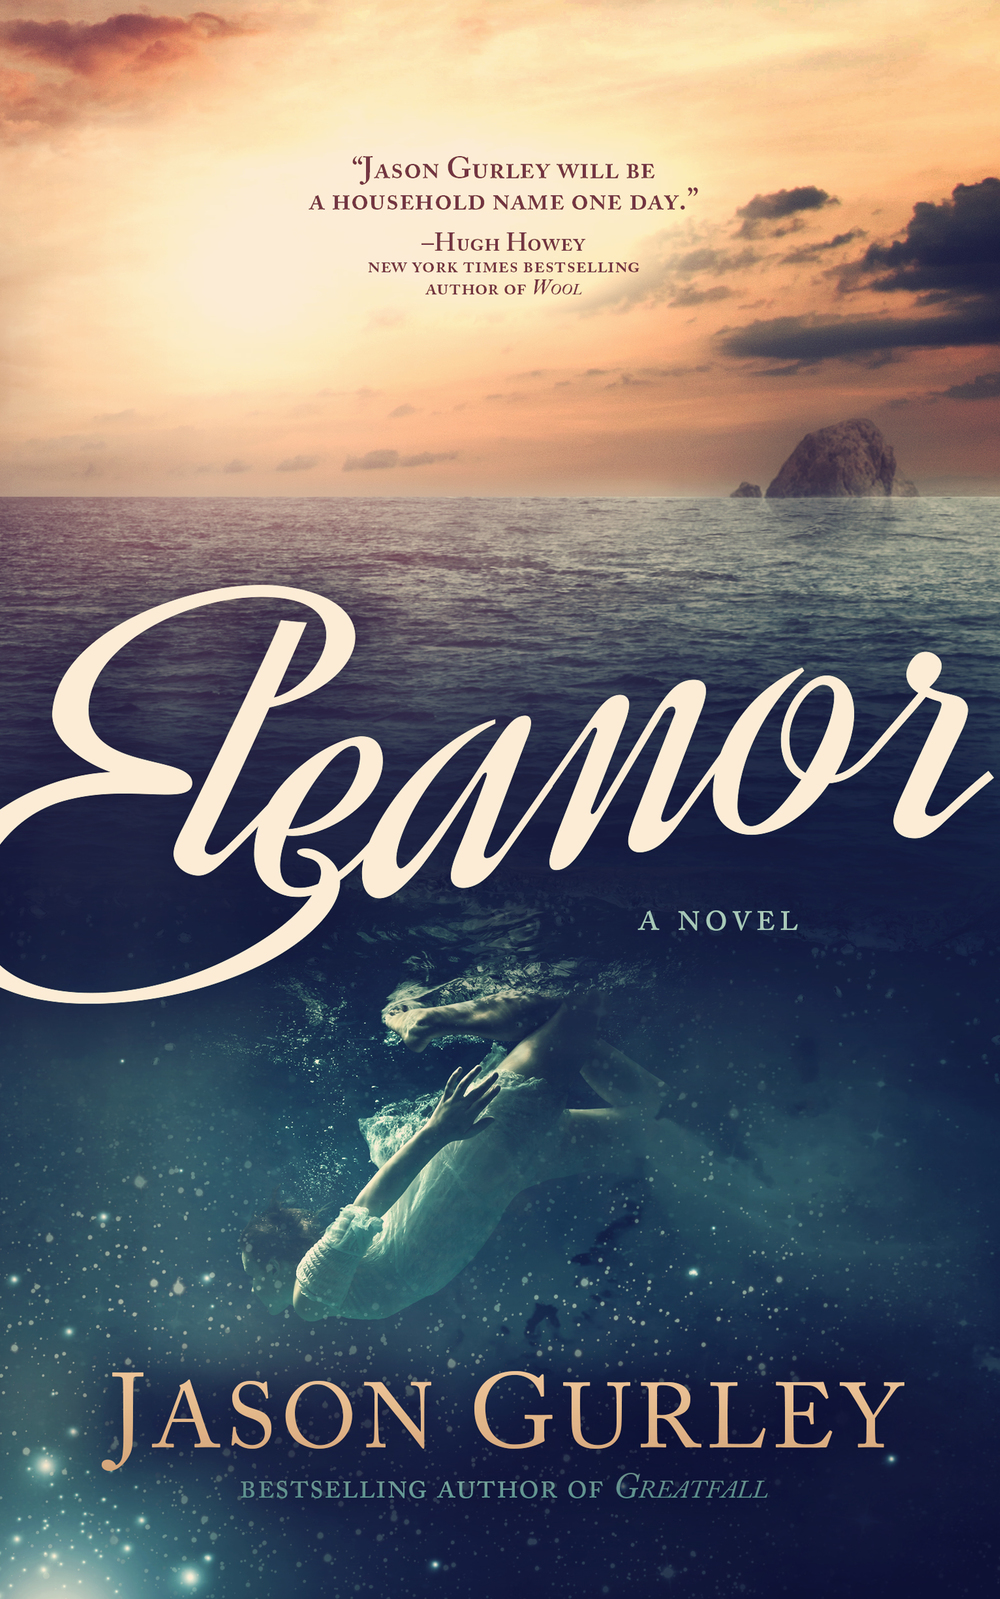 Eleanor  finally comes out on Friday!